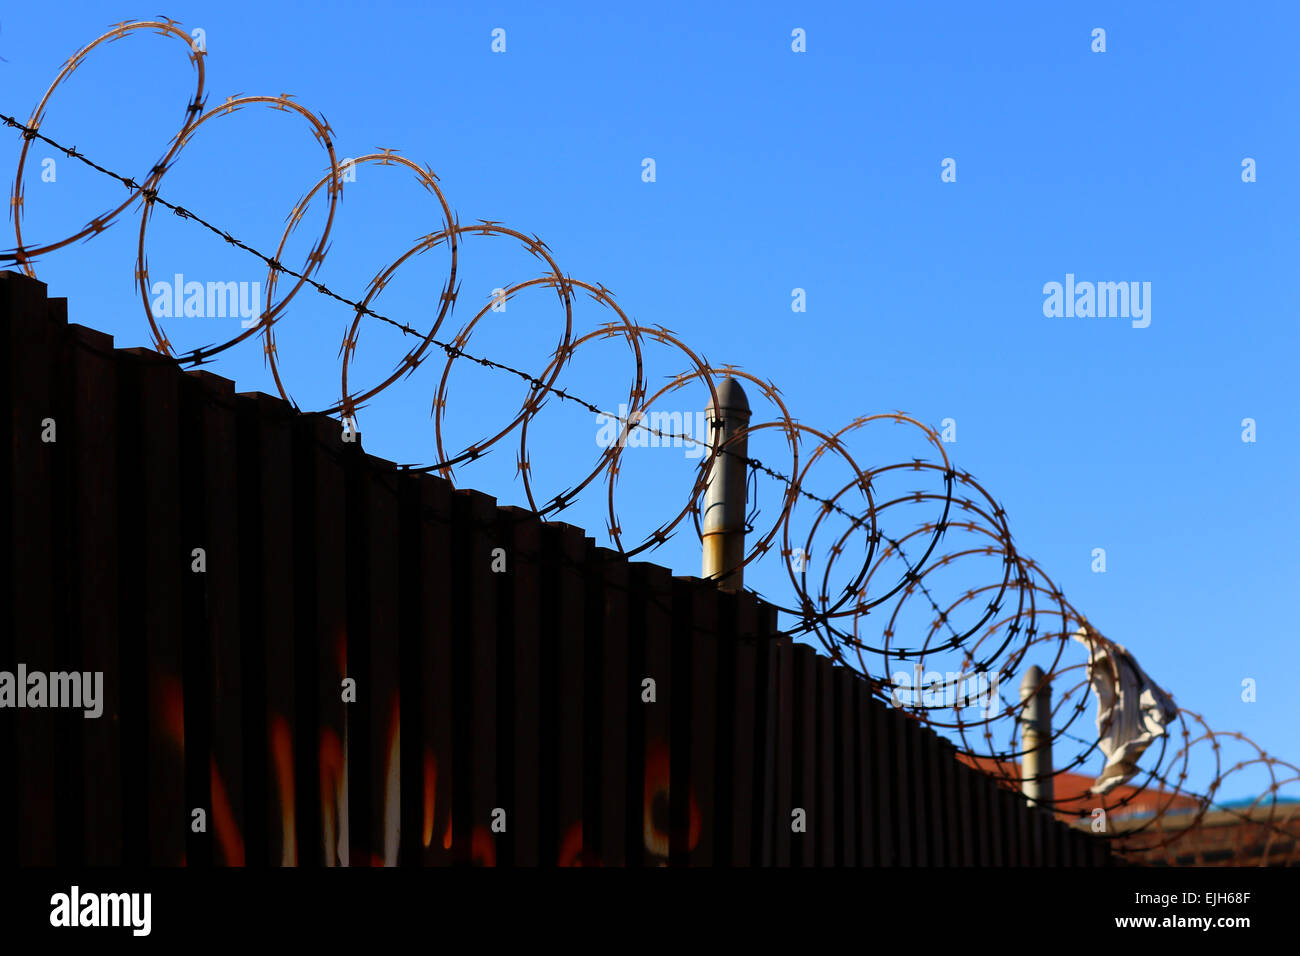 Razor Wire On Top Of Wire Fence Stock Photos & Razor Wire On Top Of ...